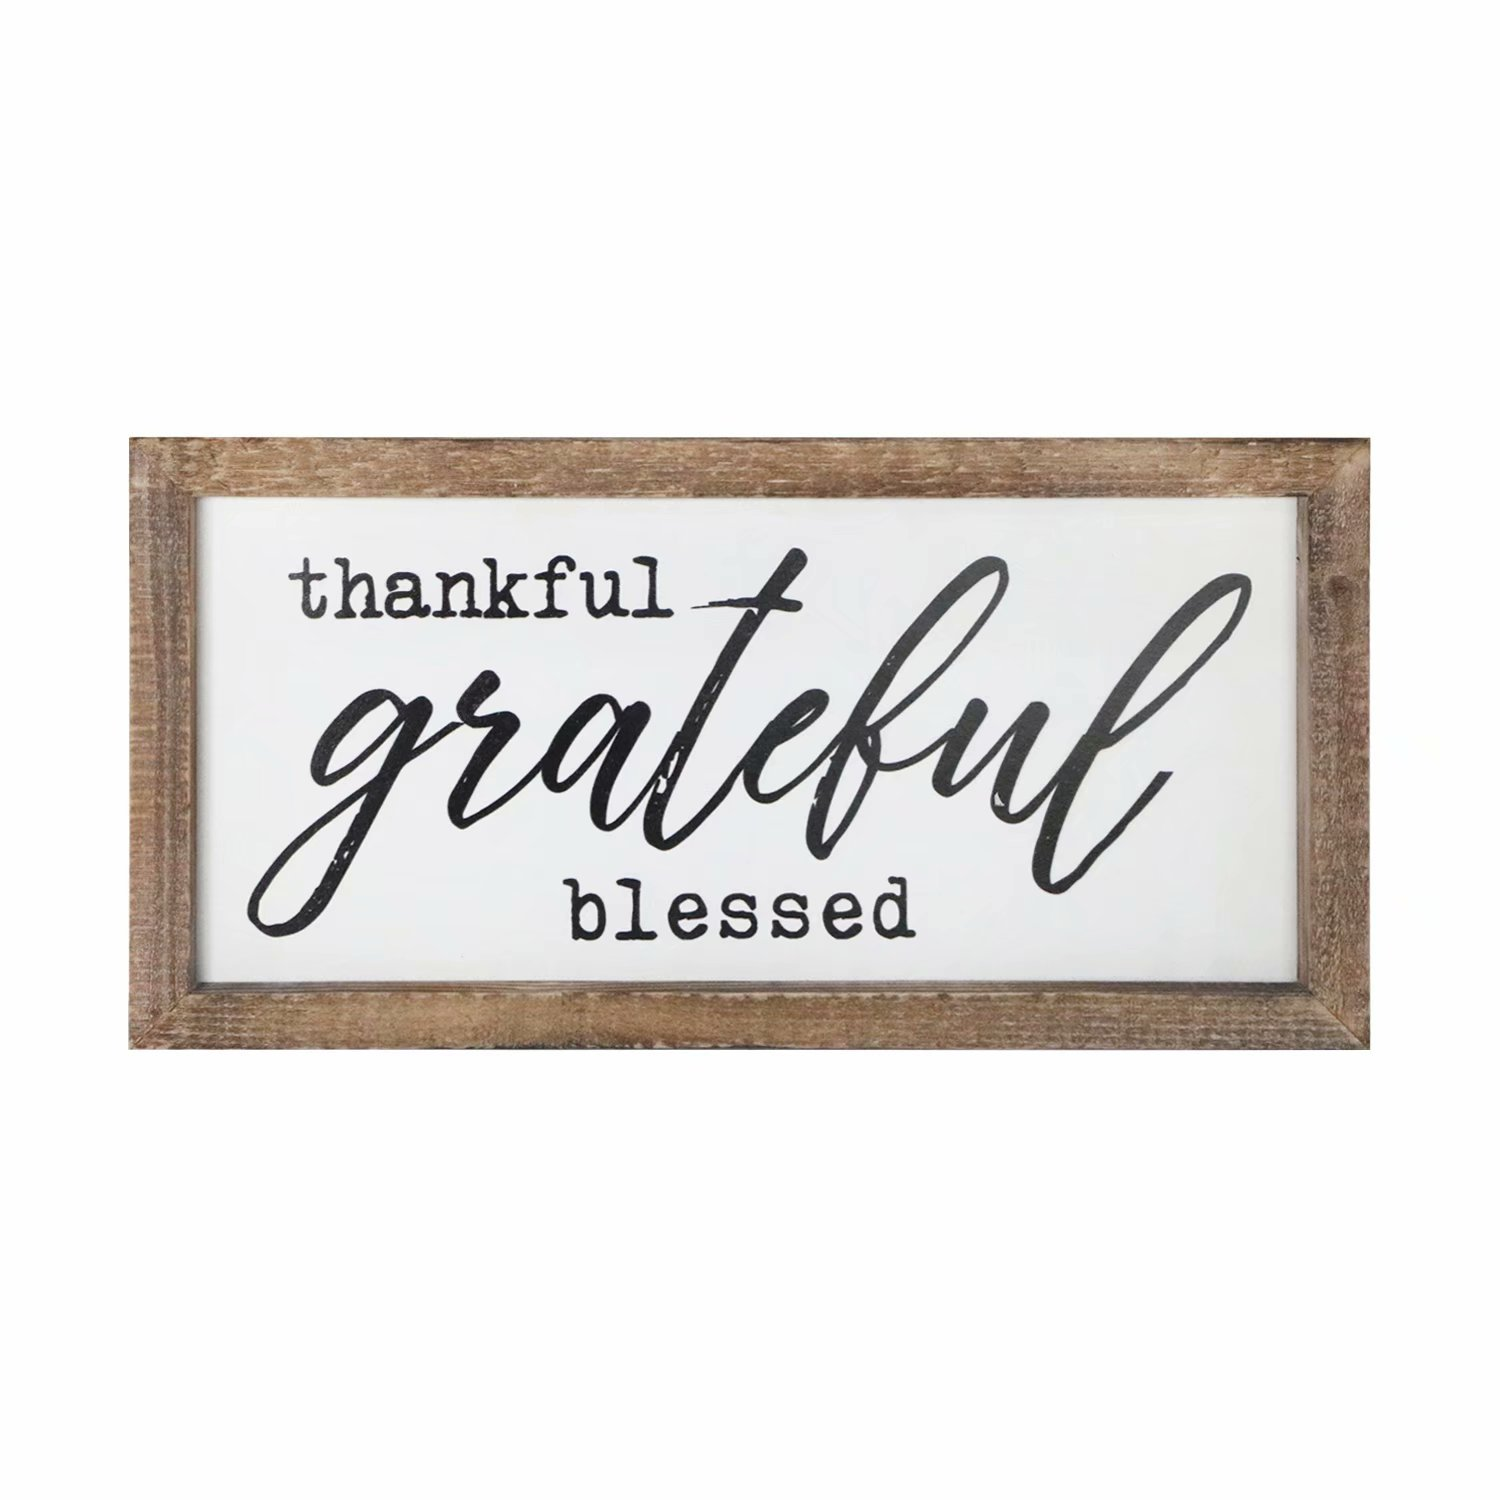 SANY DAYO HOME Wall Decor Signs with Inspirational Sayings 16 x 8 inches Rustic Wood Framed Modern Farmhouse Wall Hanging Art - Thankful Grateful Blessed